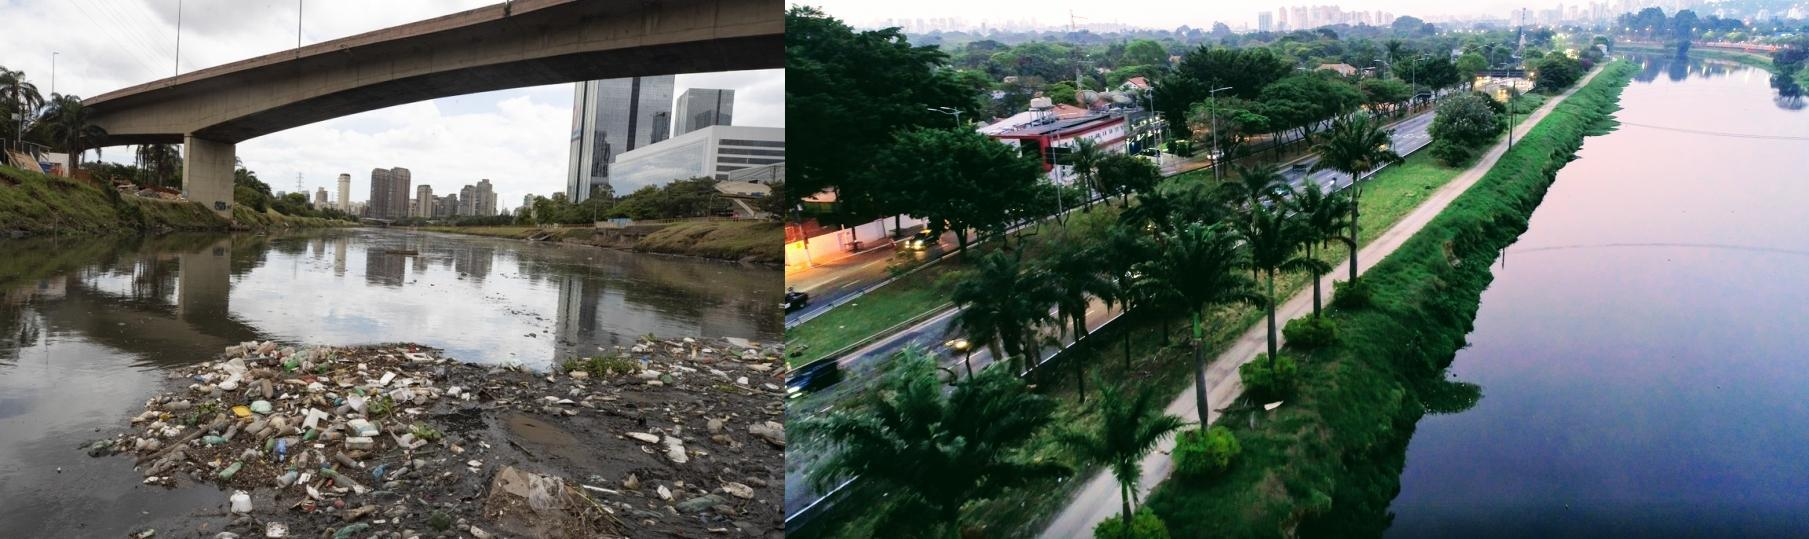 Clean rivers help to make a sustainable city.